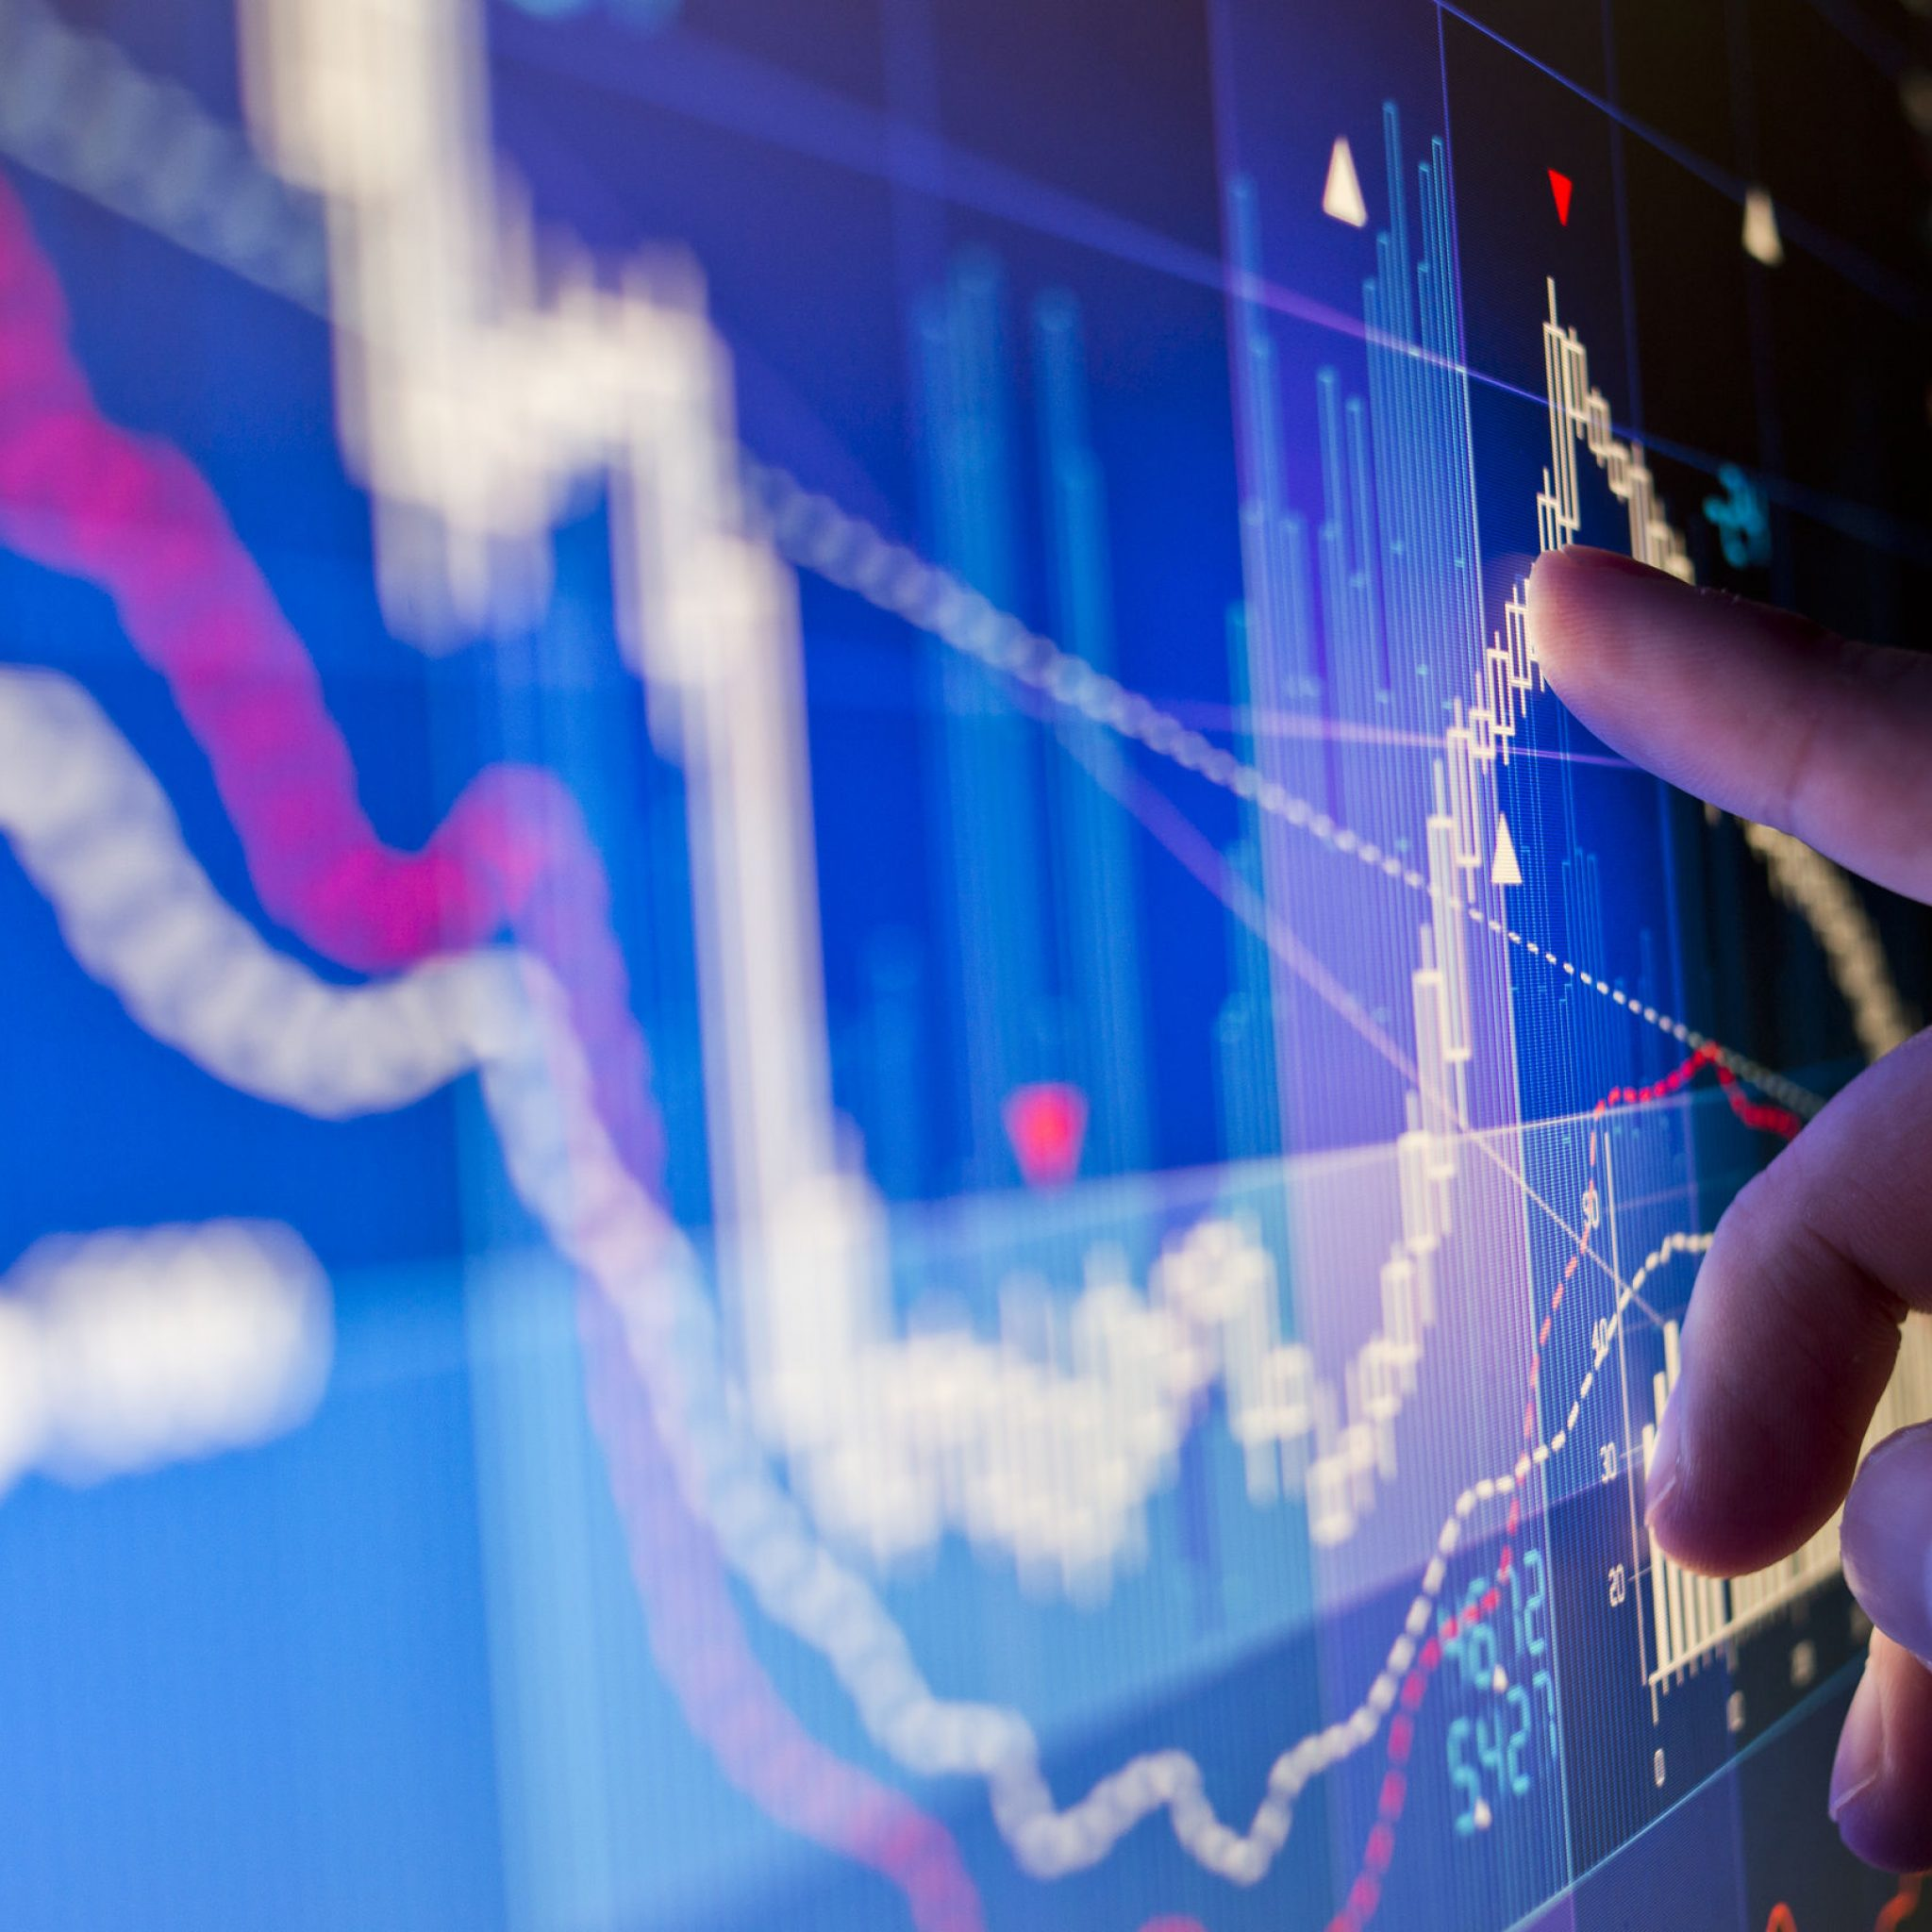 Report: Companies moving toward real-time data analysis